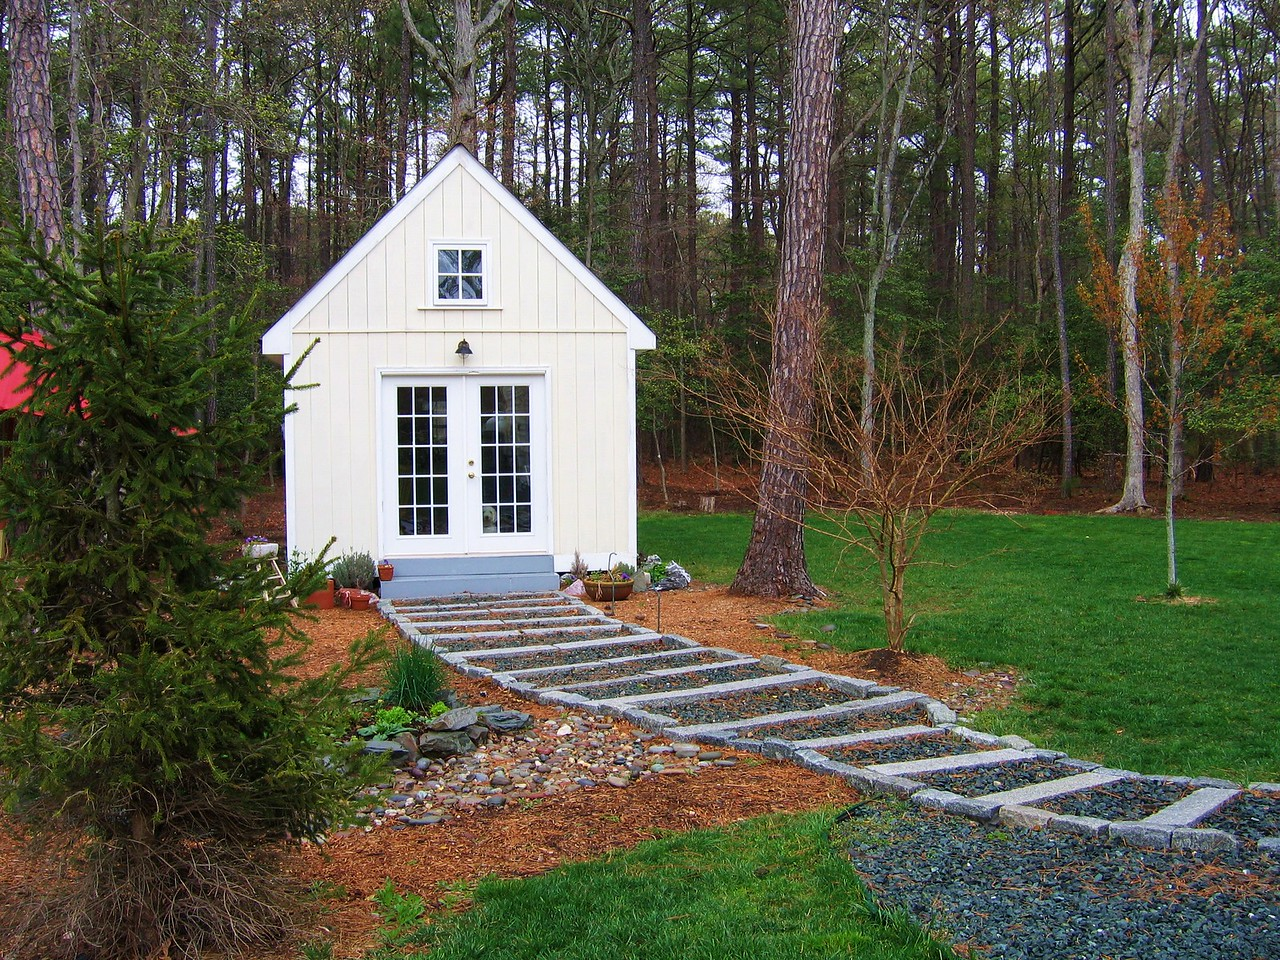 The steps that lead to the shed or utility room are well designed and complements the house.